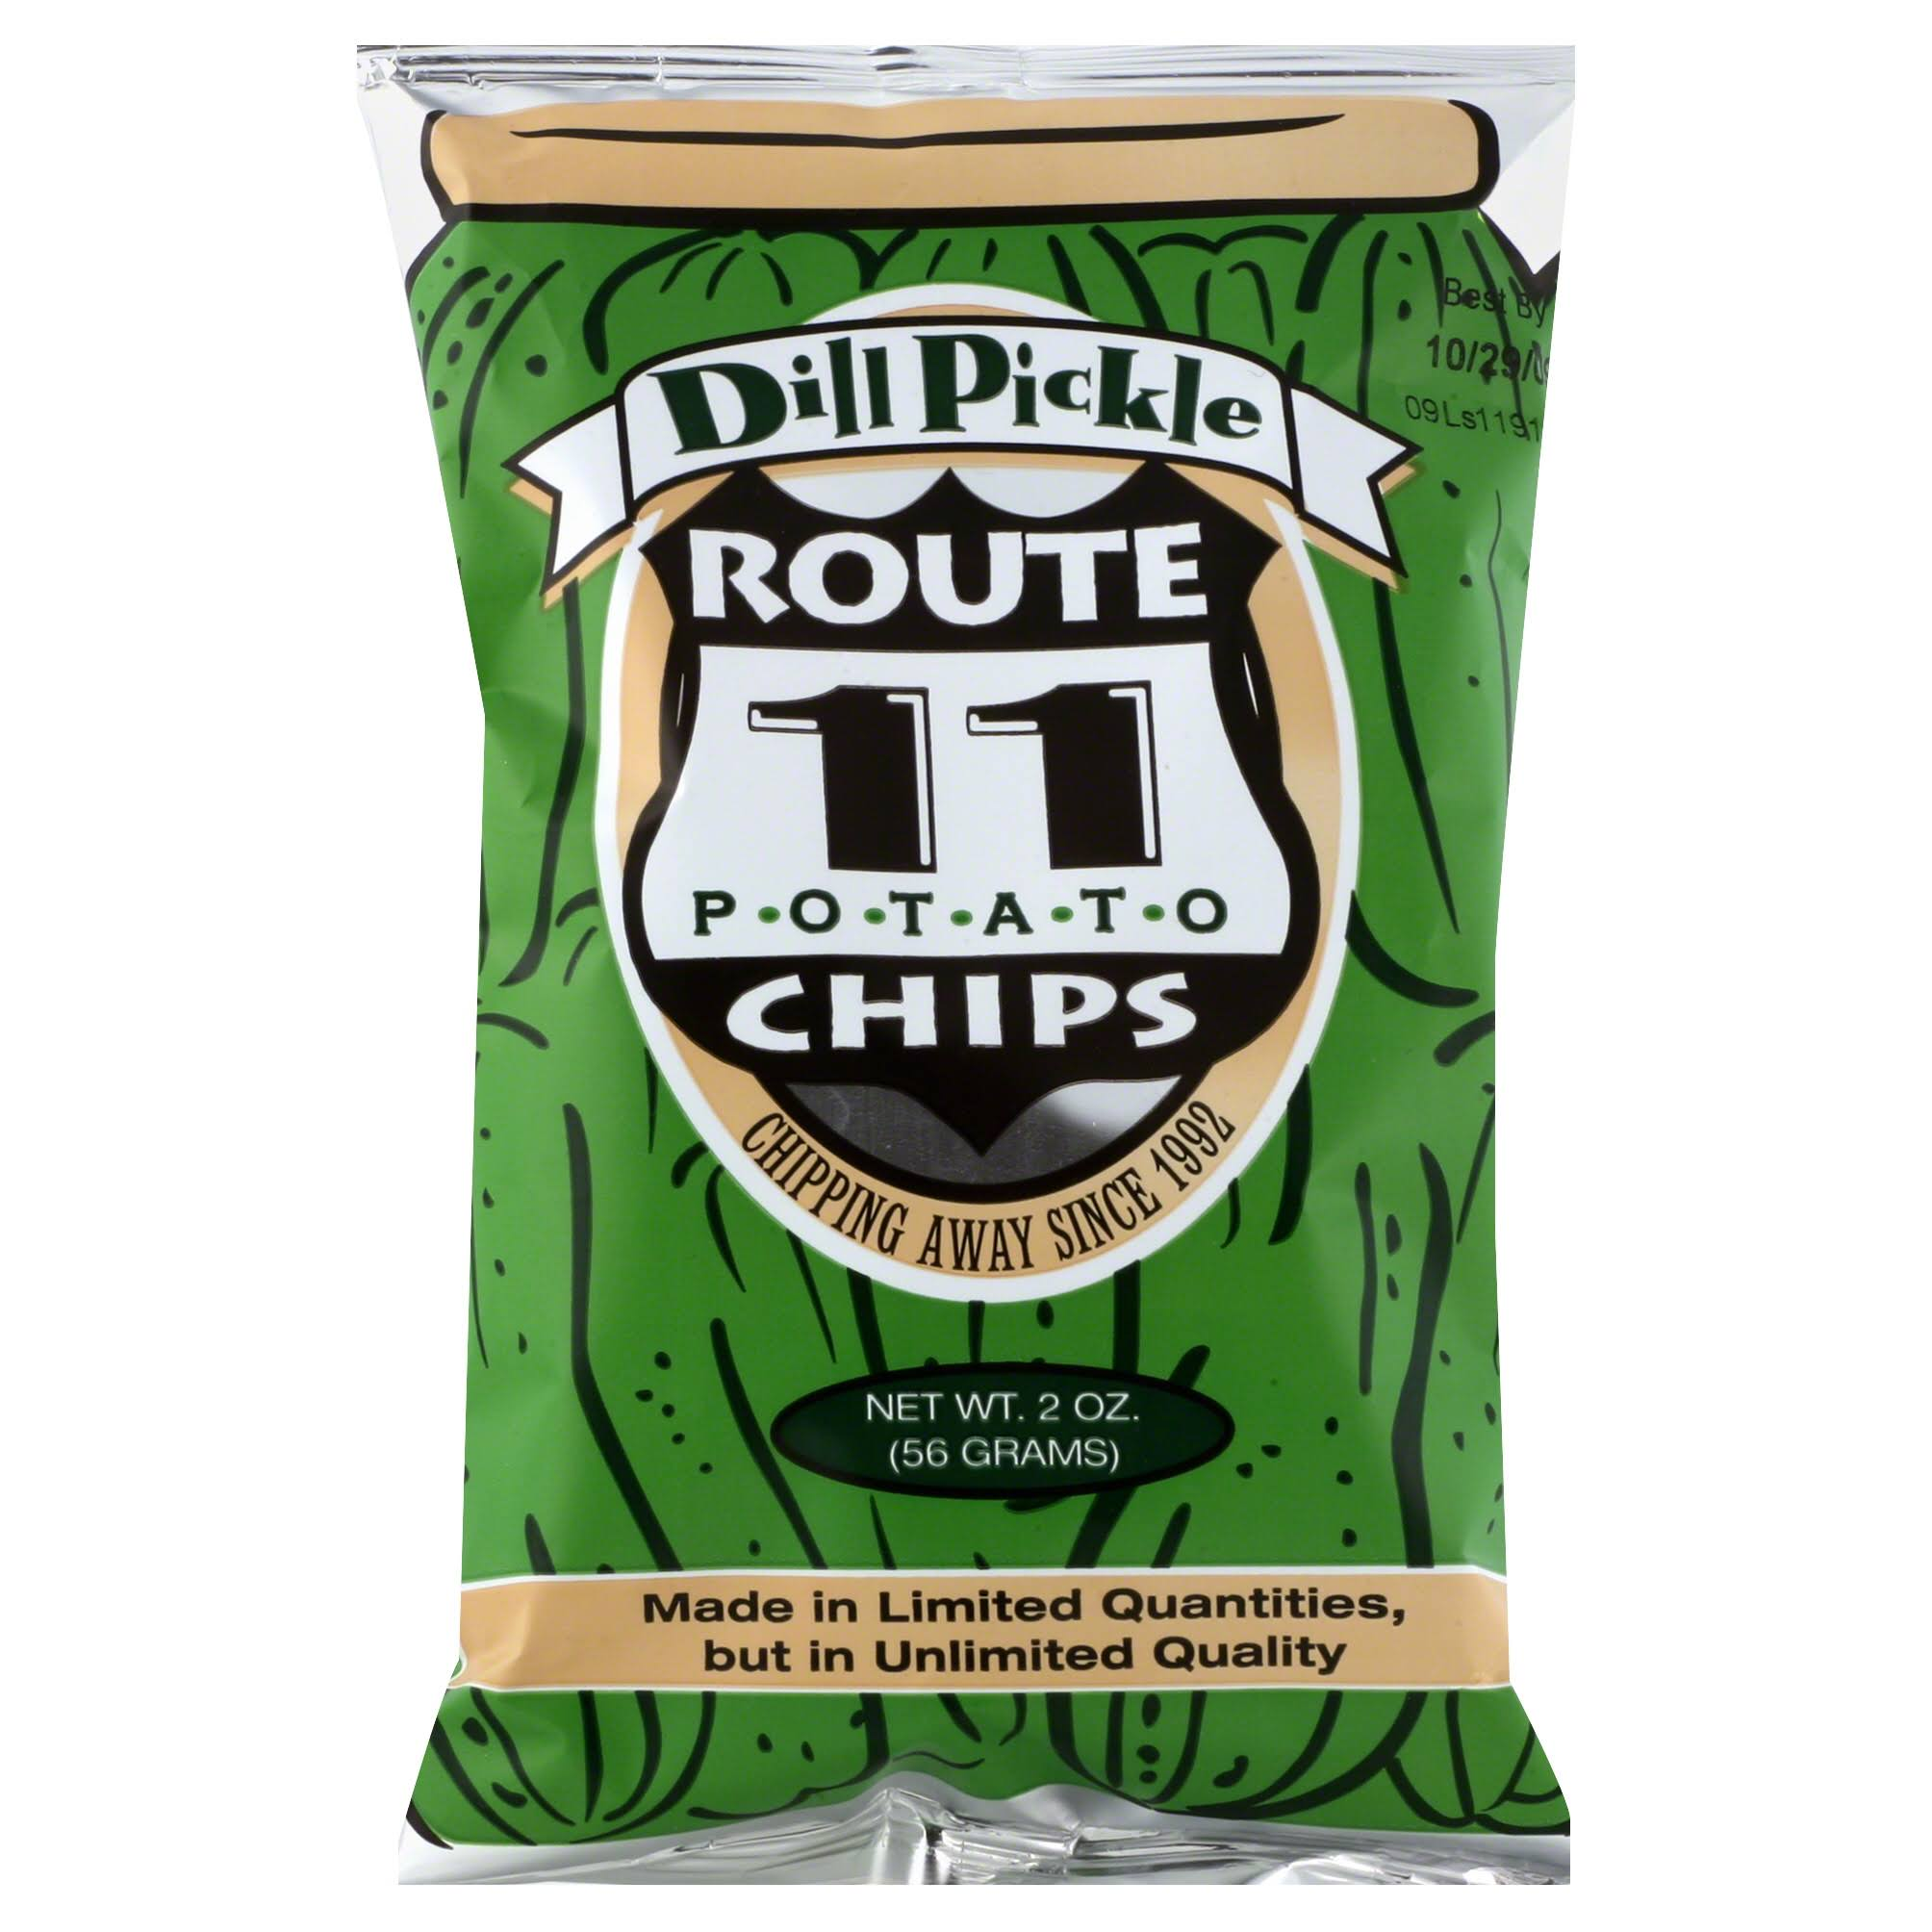 Route 11 Potato Chips - Dill Pickle, 2oz